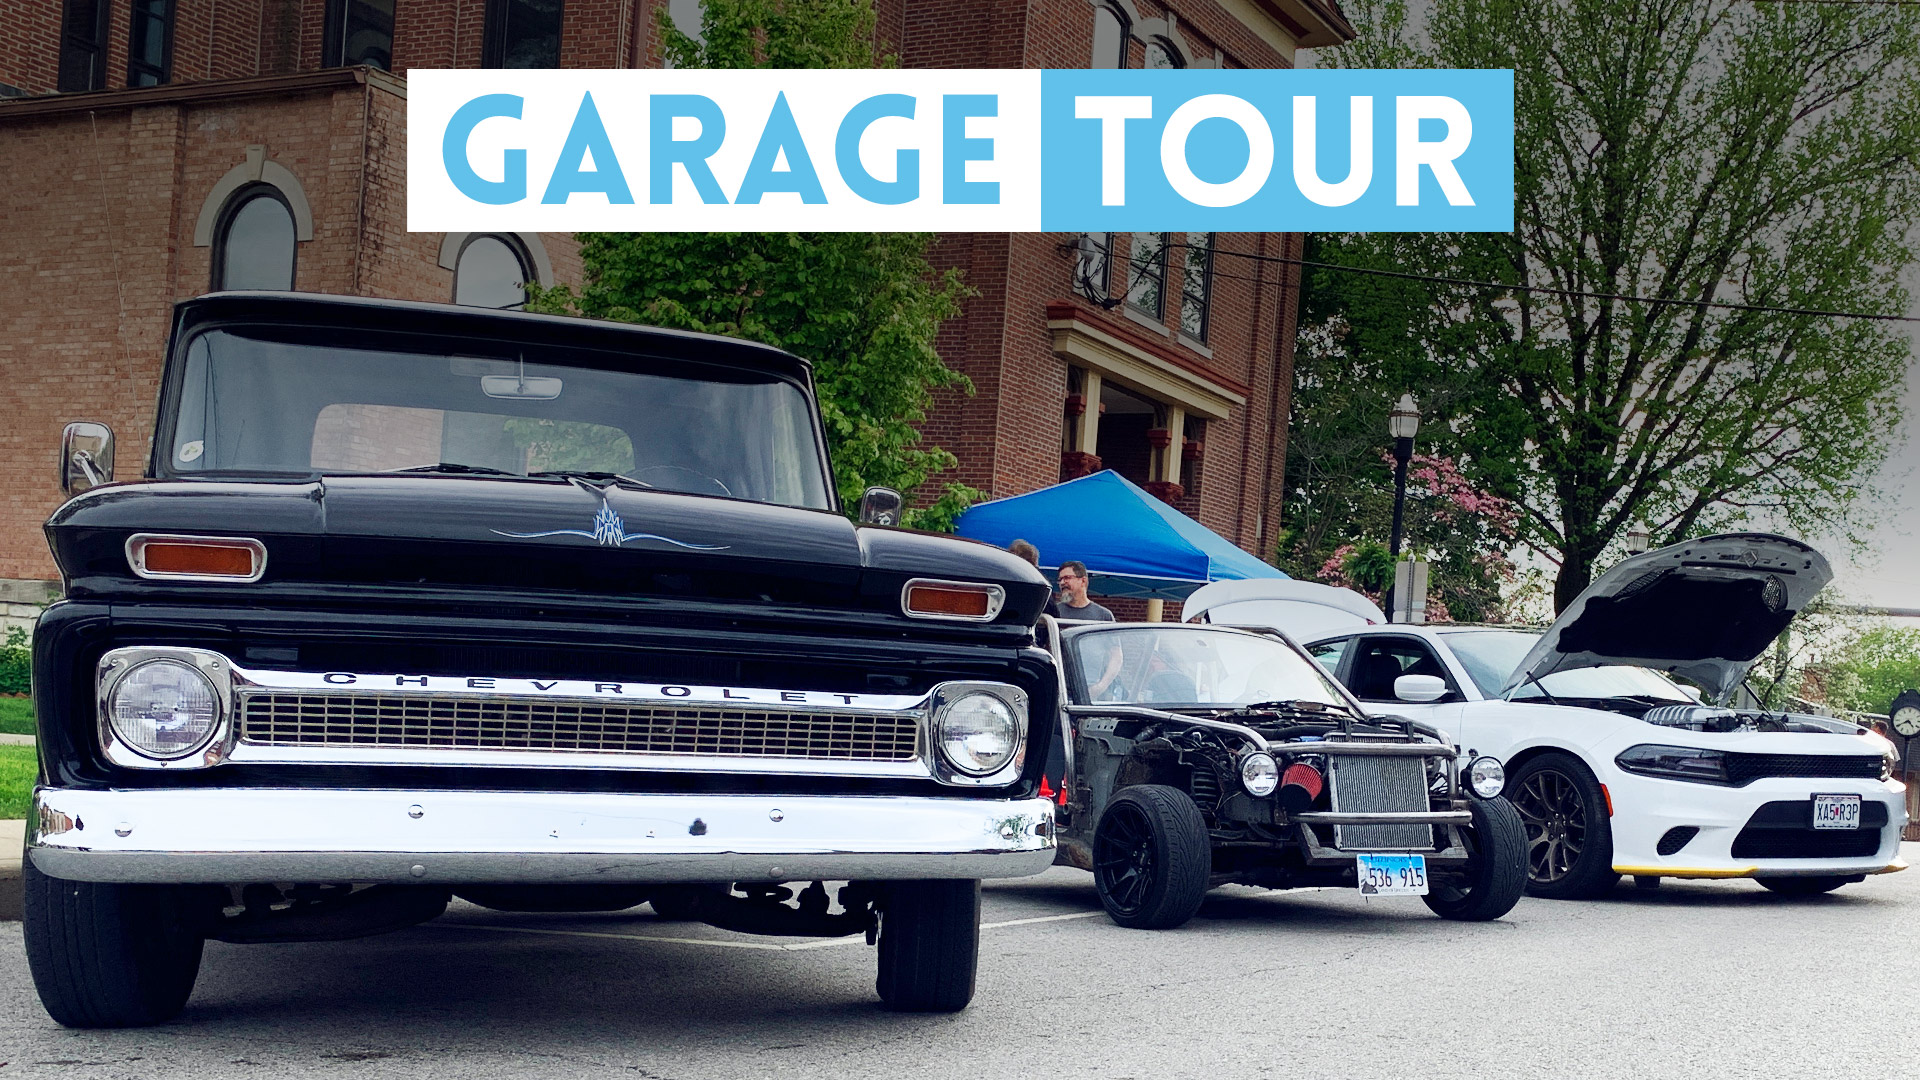 GARAGE TOUR: Every Current Blvckflagd Project Car